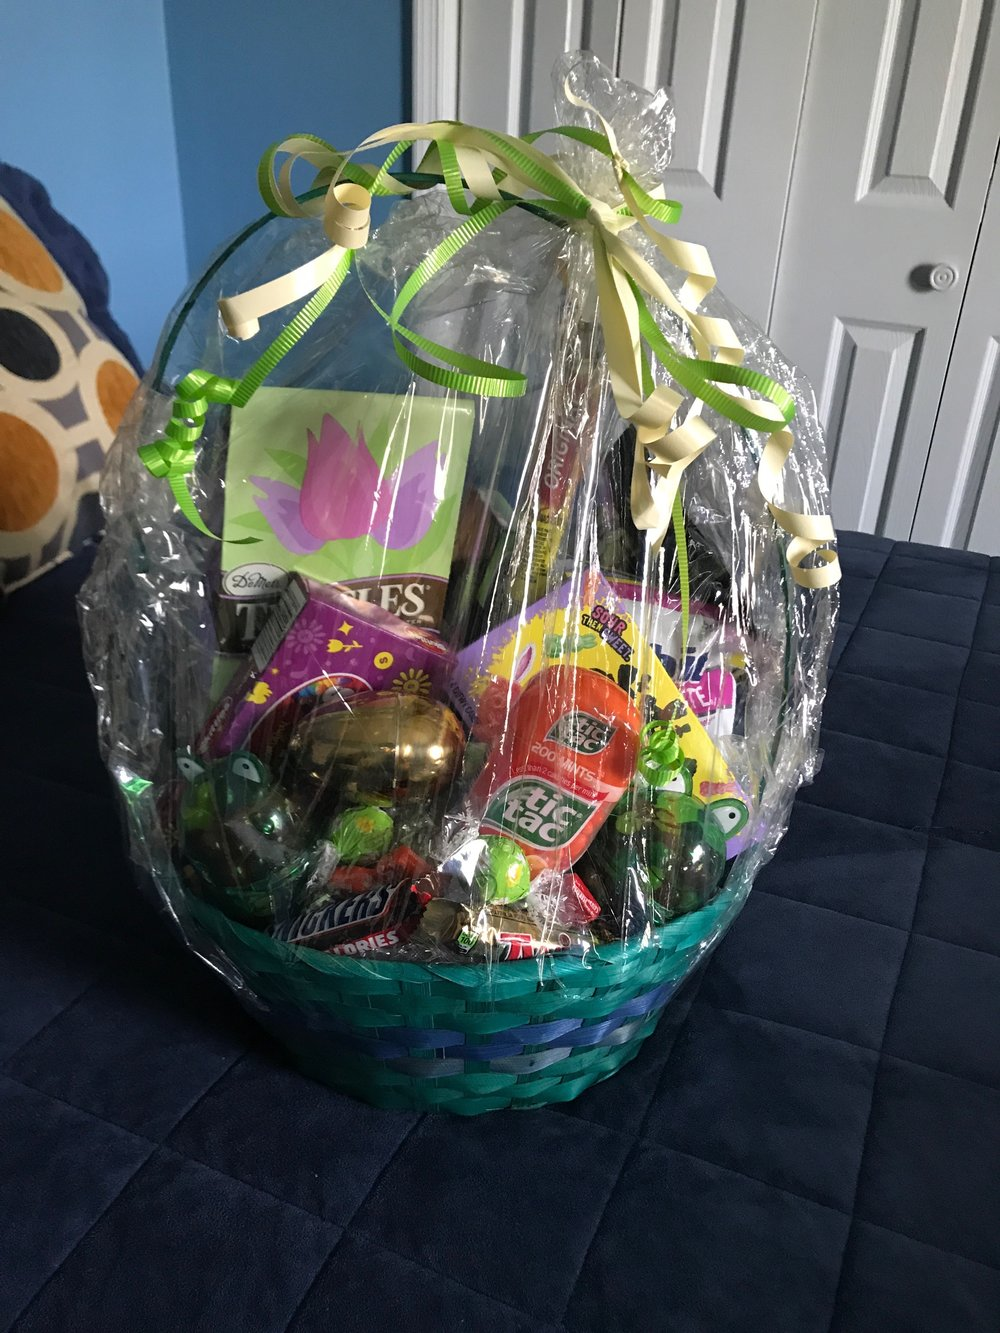 The Last Easter Basket